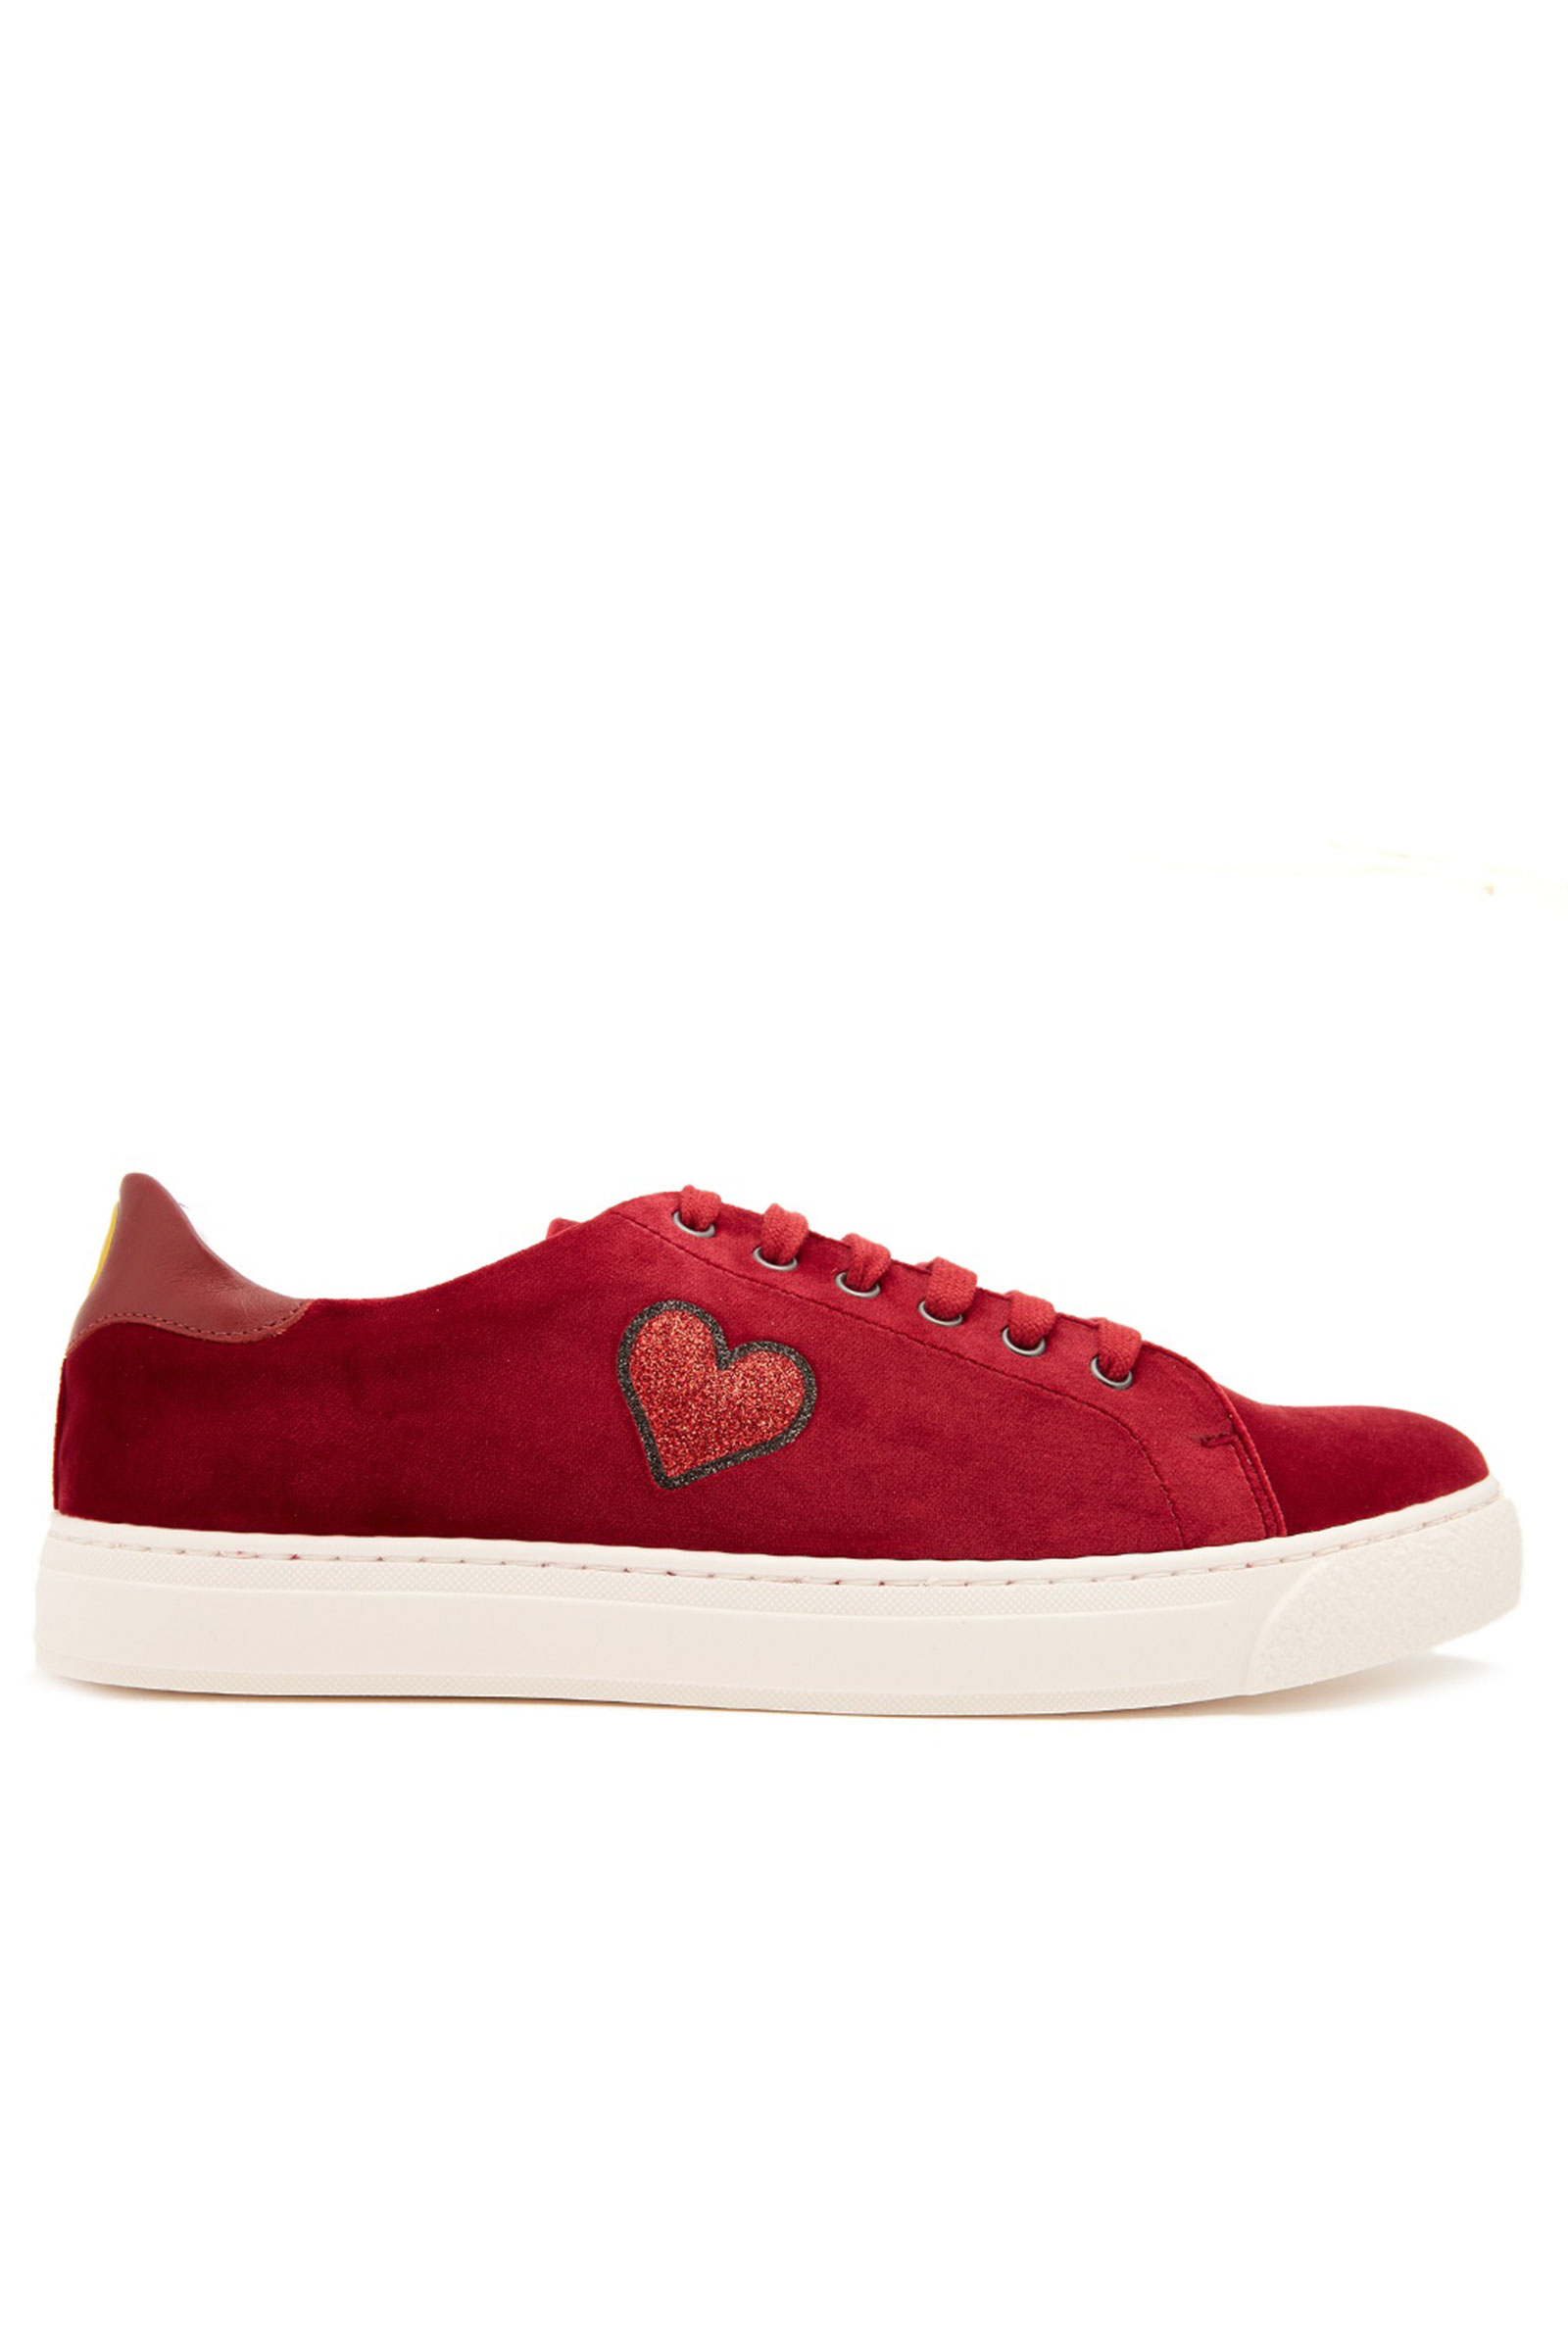 Click to Buy Anya Hindmarch Sneakers